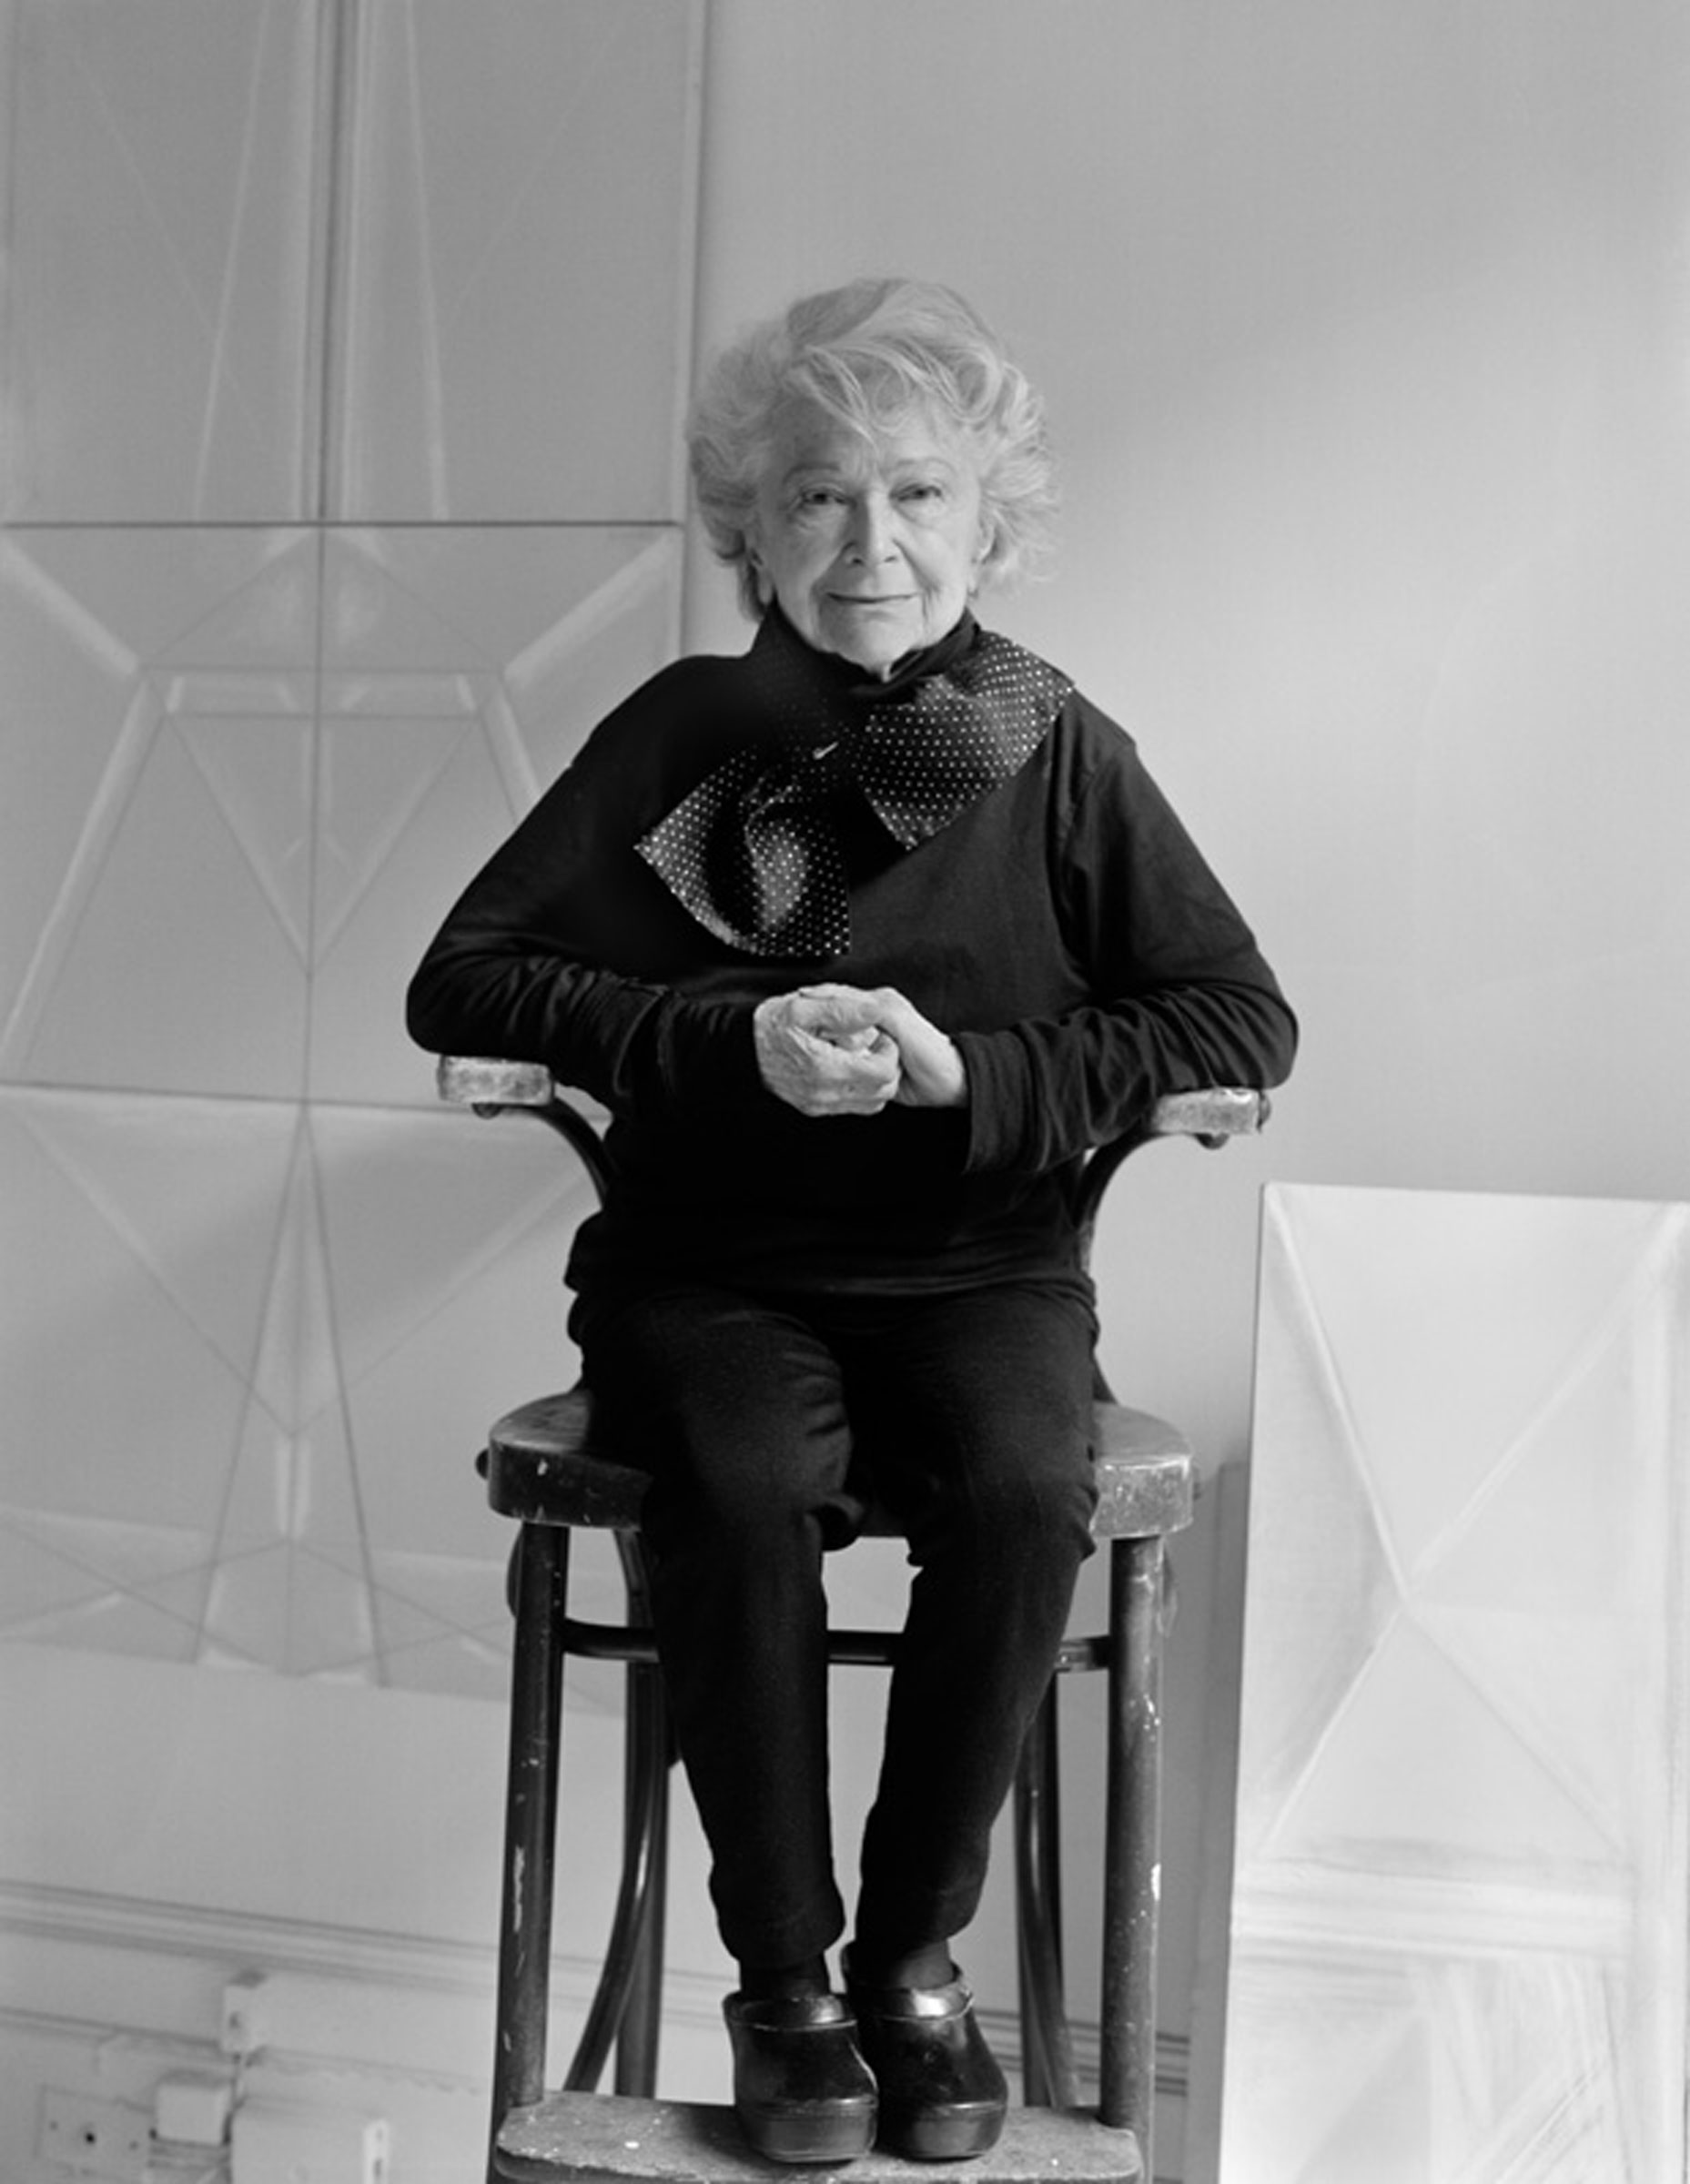 Portrait of Hedda Sterne, 6 February 1992 | photograph by Barbara Yoshida, © Barbara Yoshida